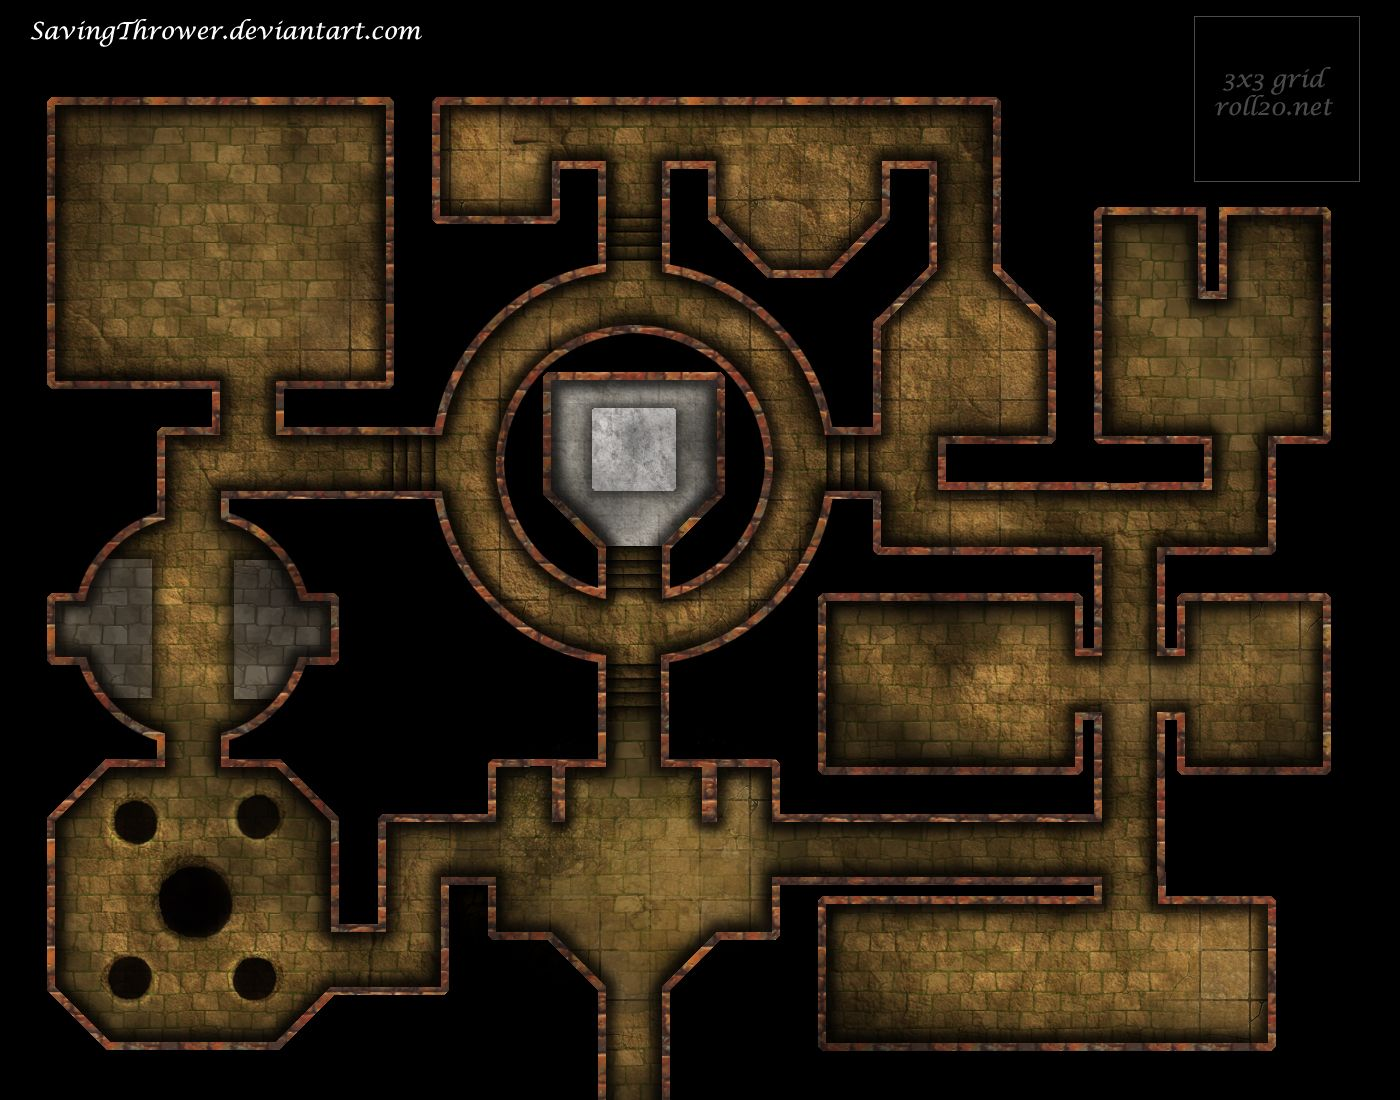 Clean stone dungeon battlemap for DnD / roll20 by